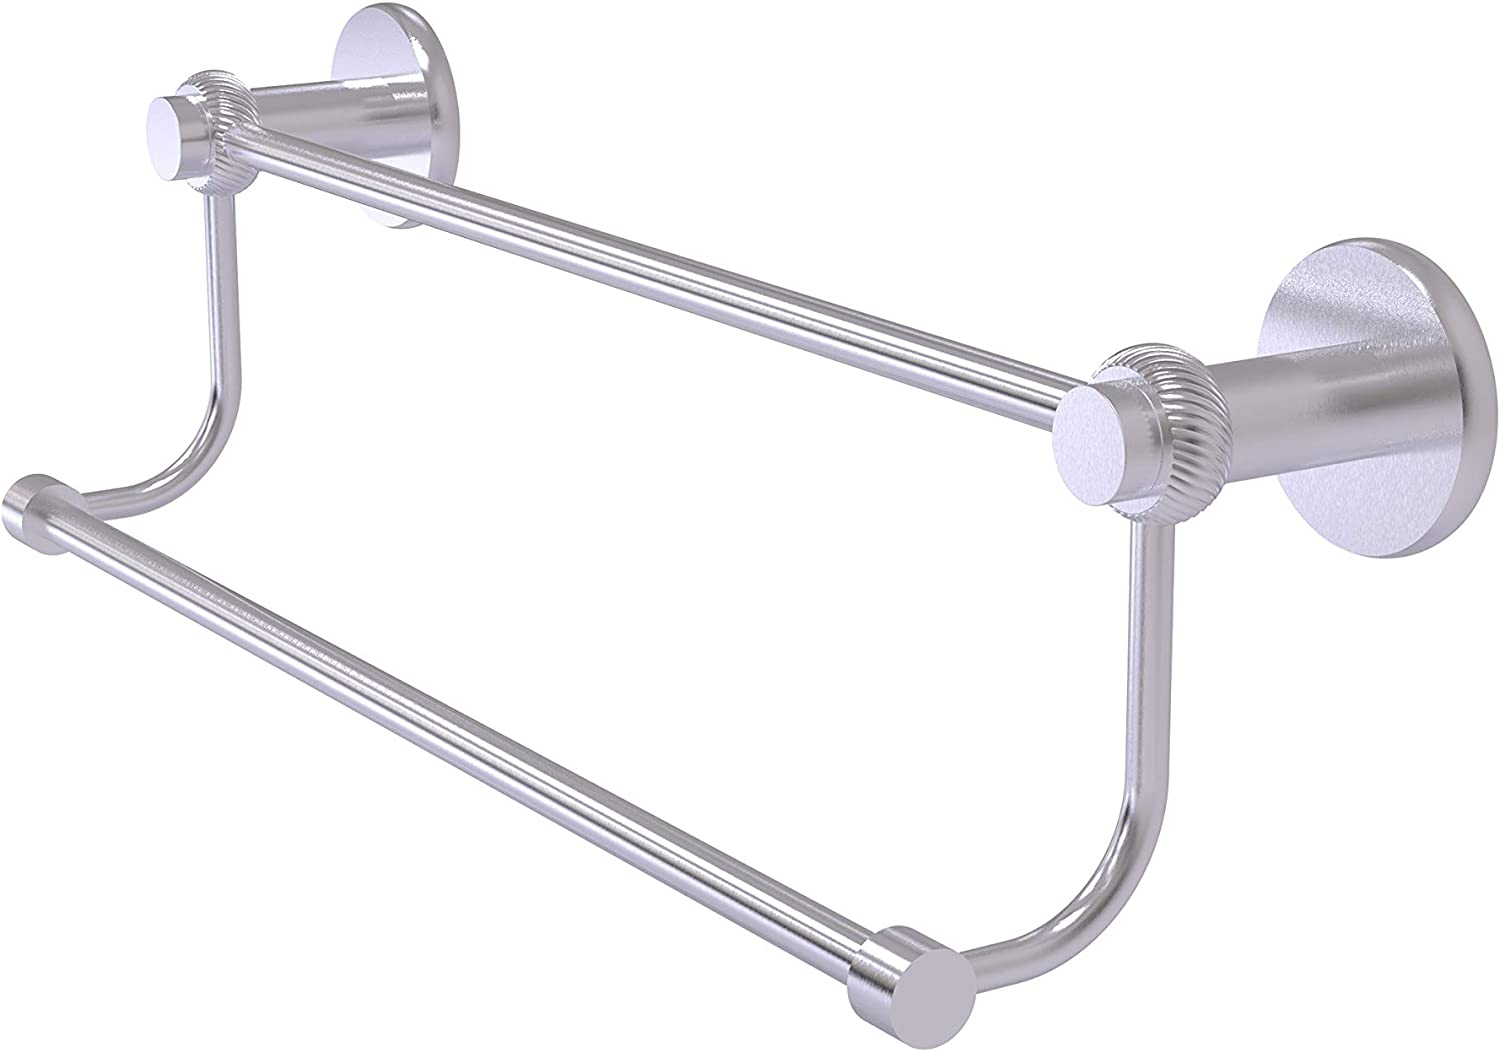 Allied Brass 9072T//36-PEW Mercury Collection 36 Inch Double Towel Bar with Twist Accents 36-Inch Antique Pewter